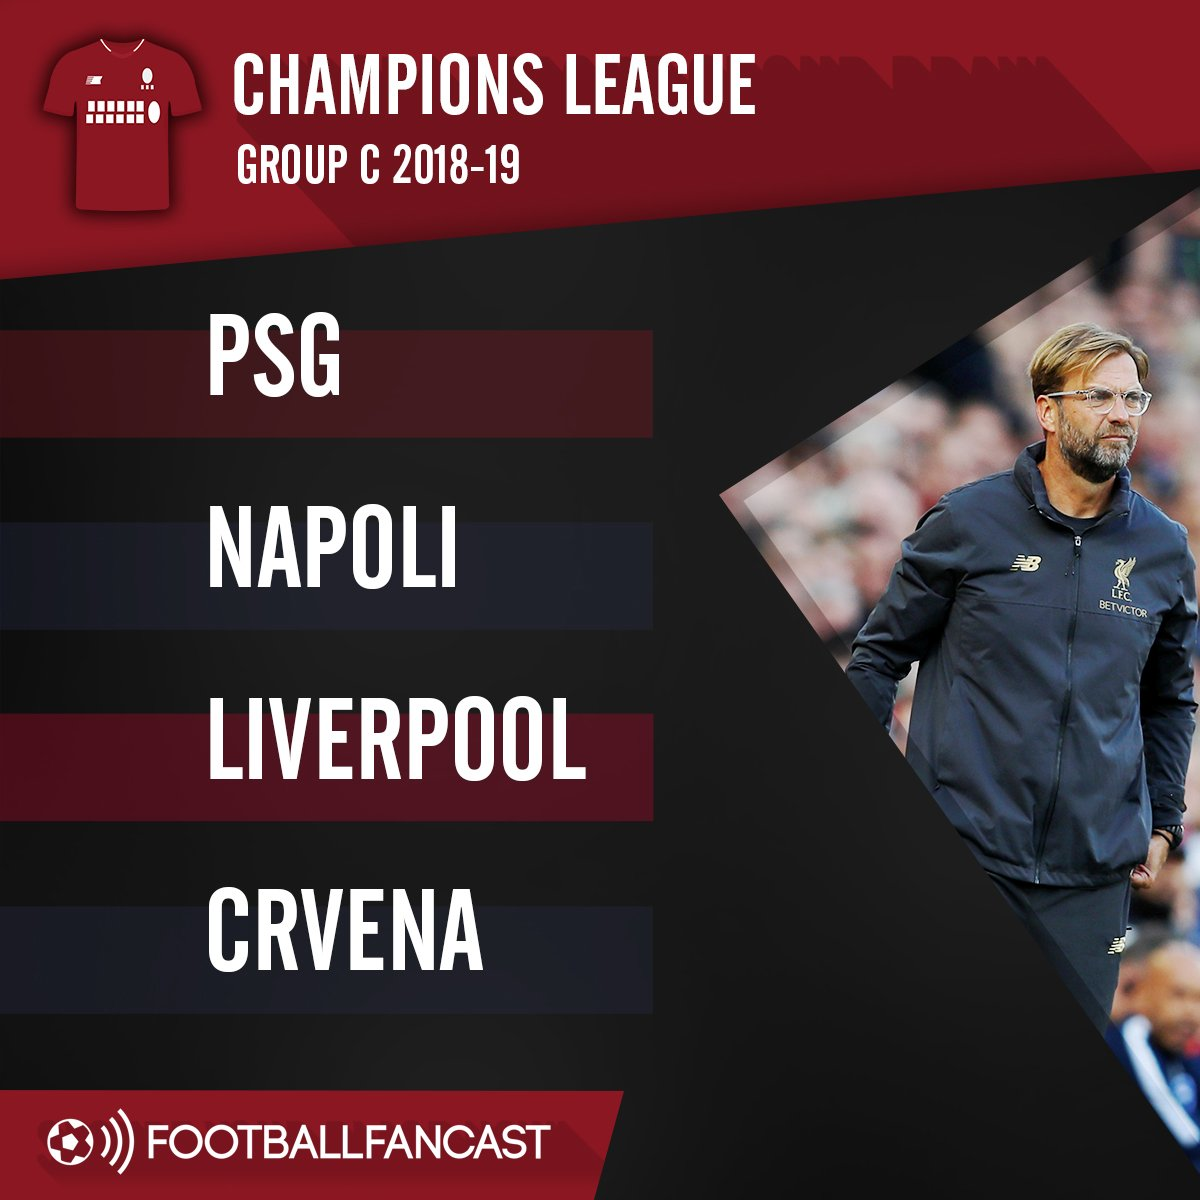 Liverpool's Champions League group